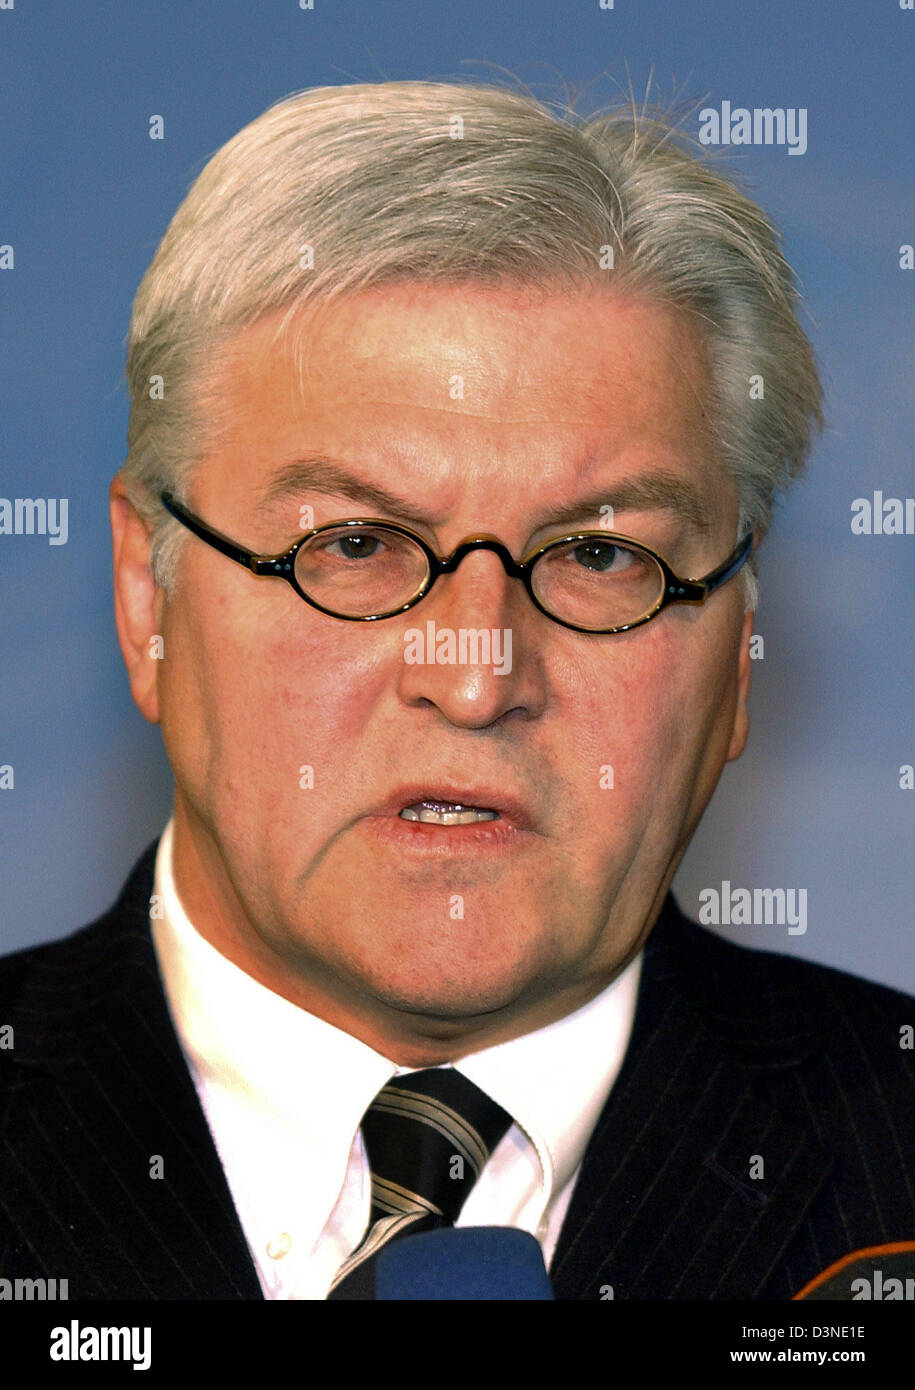 The picture shows Frank-Walter Steinmeier, Germany's Federal Minister for Foreign Affairs of the Social Democrats (SPD) in Berlin, Germany, Monday 30 January 2006. Photo: Stephanie Pilick Stock Photo